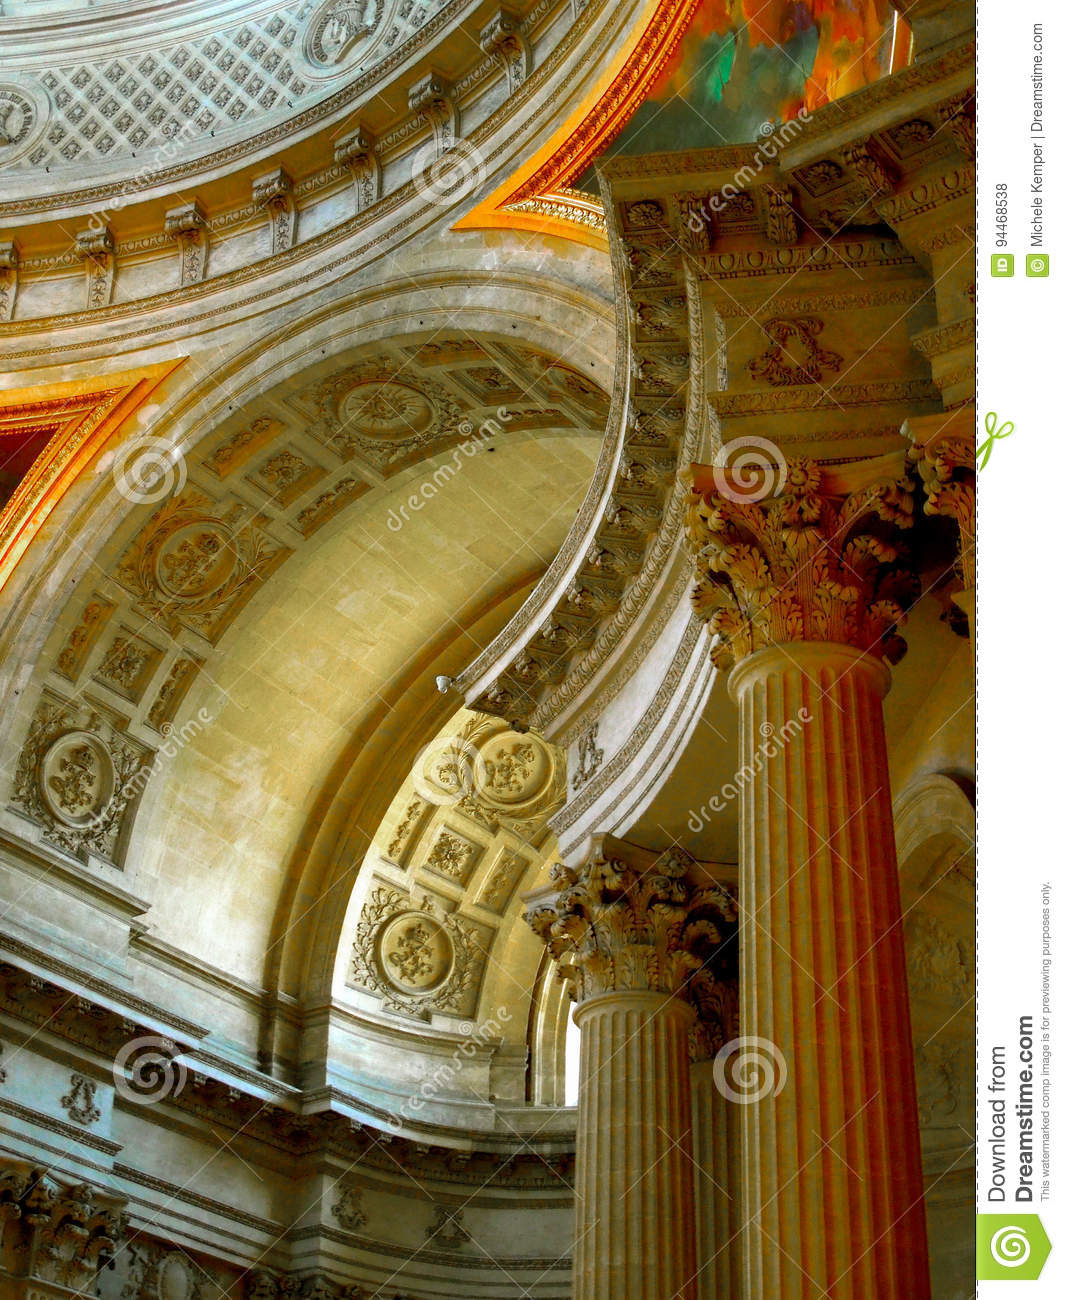 Military Museum Ceiling Paris Stock Photo - Image of attraction